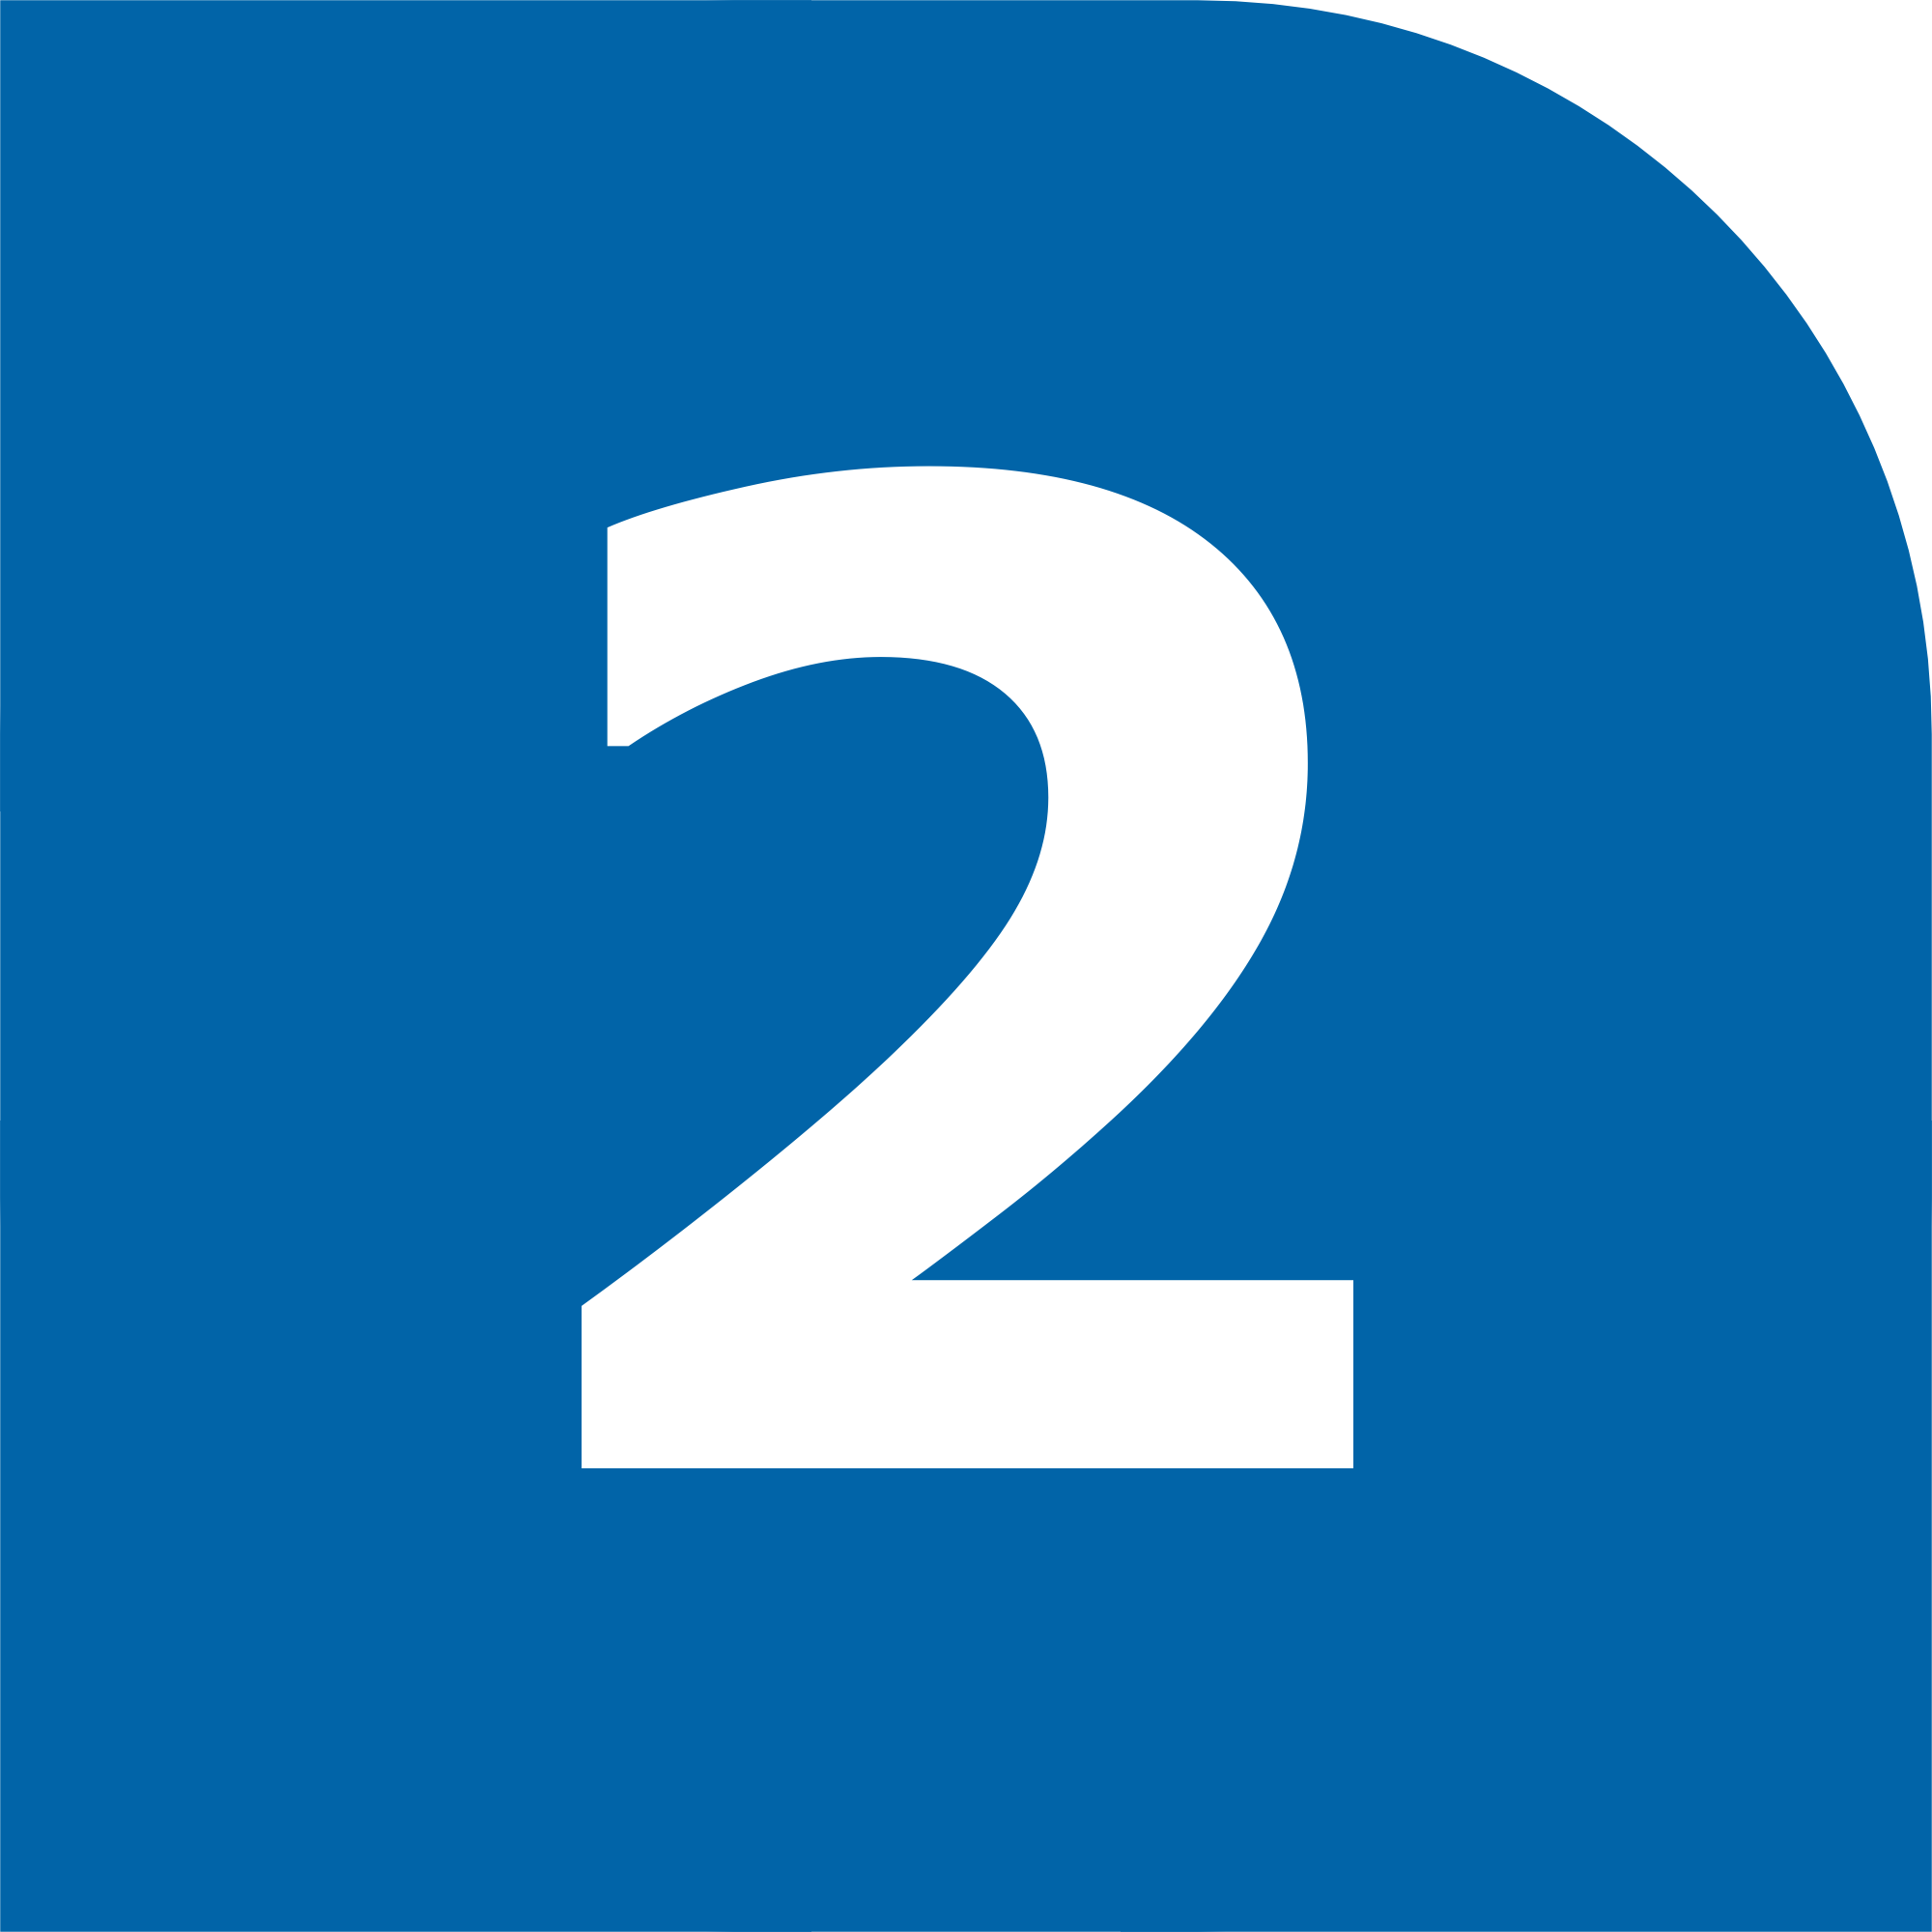 File:STC line 2 icon.png